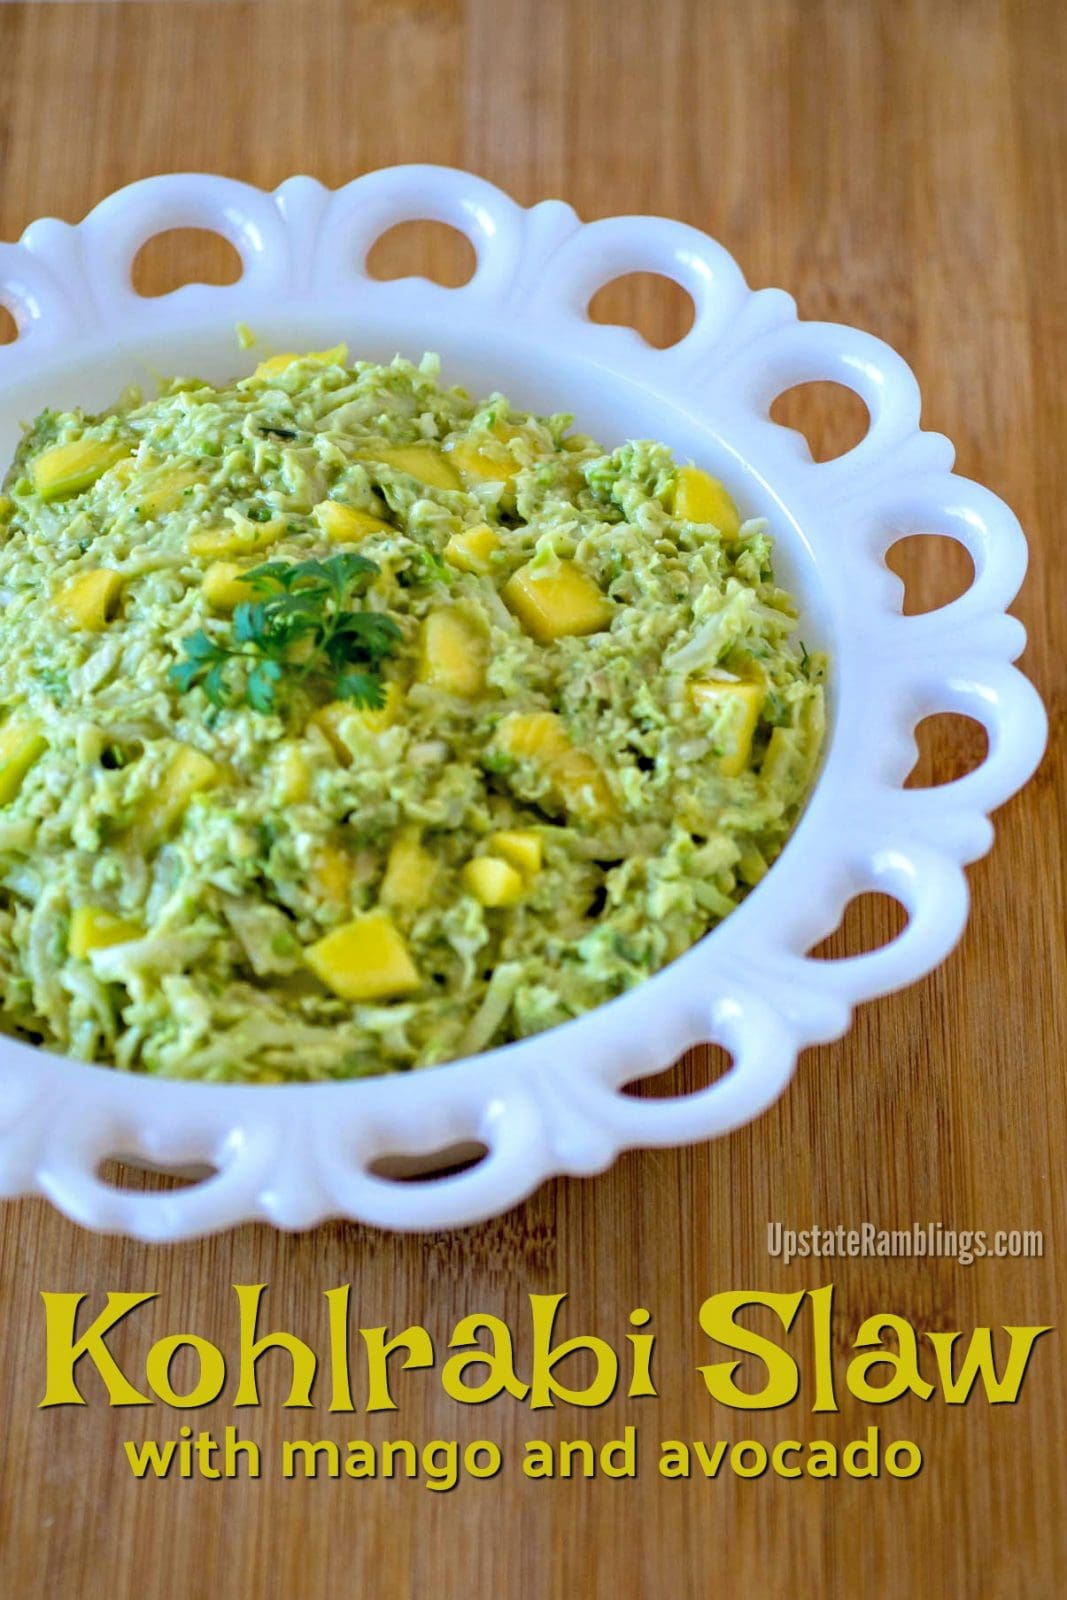 This tasty Kohlrabi Slaw is made with mango and avocado for an easy and healthy kohlrabi recipe you can make for your next picnic or outdoor gathering. #kohlrabi #kohlrabislaw #kohlrabisalad #kohlrabirecipes #mango